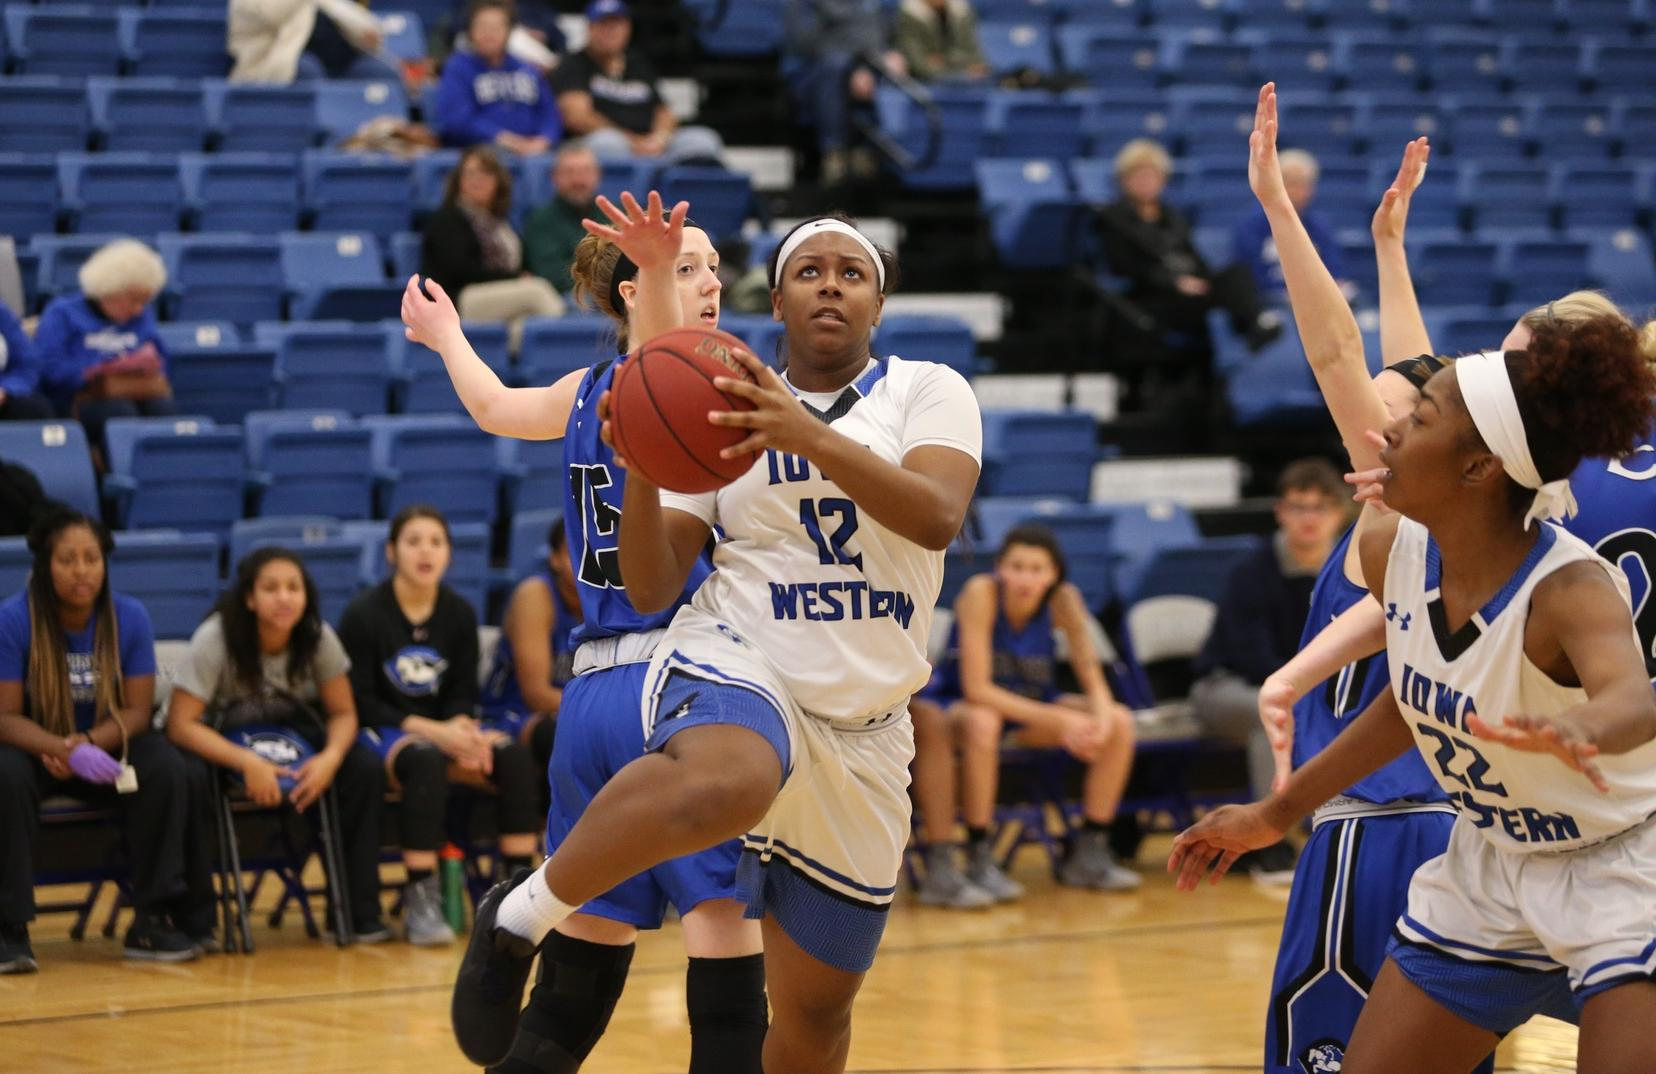 Azaria Floyd came up in the win over Marshalltown filling the stat sheet with 15 points, 4 rebounds and 3 assists.